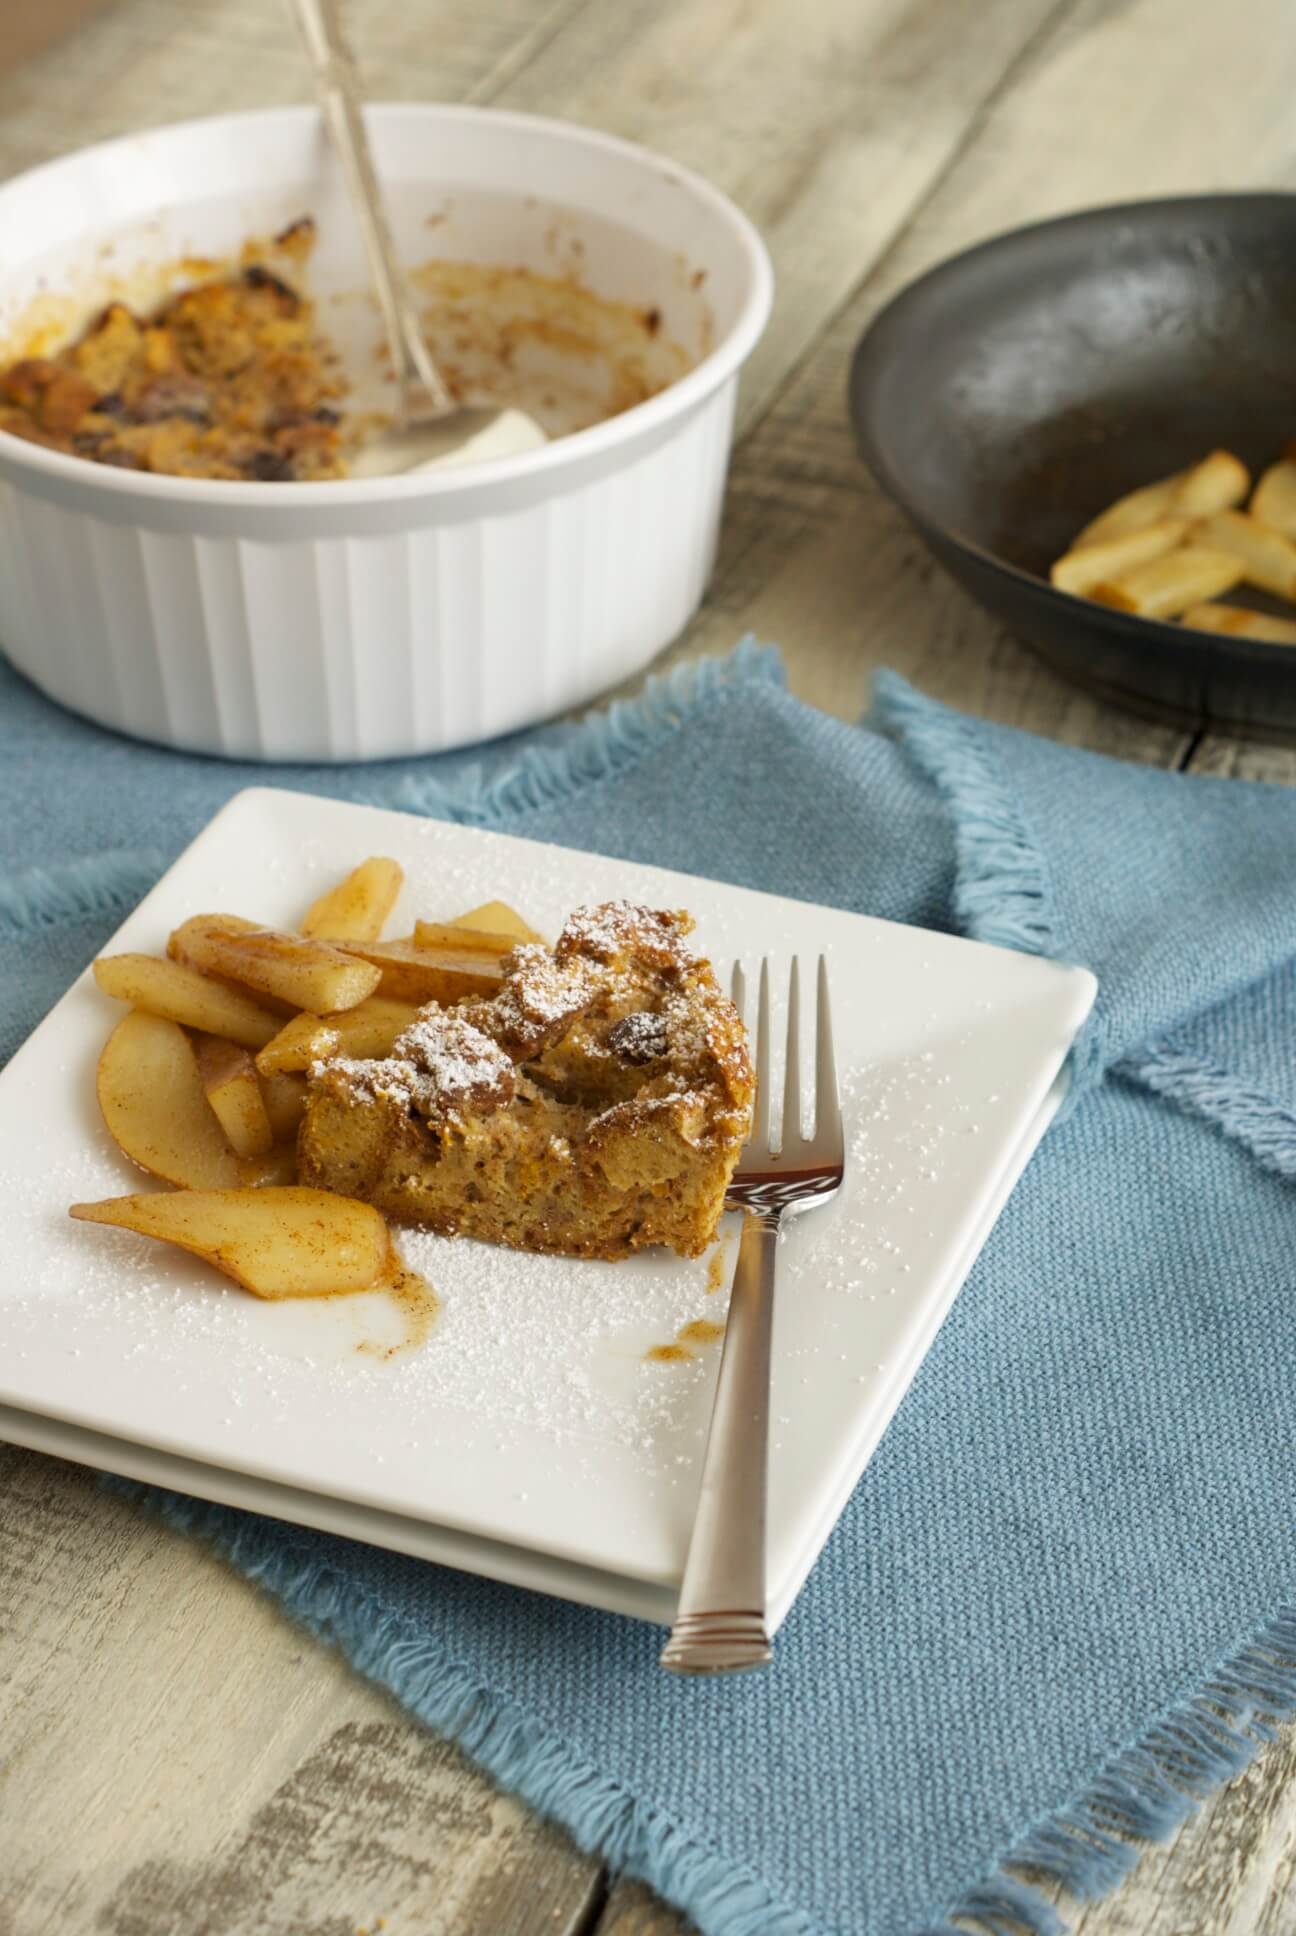 Baking Dish of Bread Pudding, Plate of Bread Pudding, Skillet with Sauteed Pears